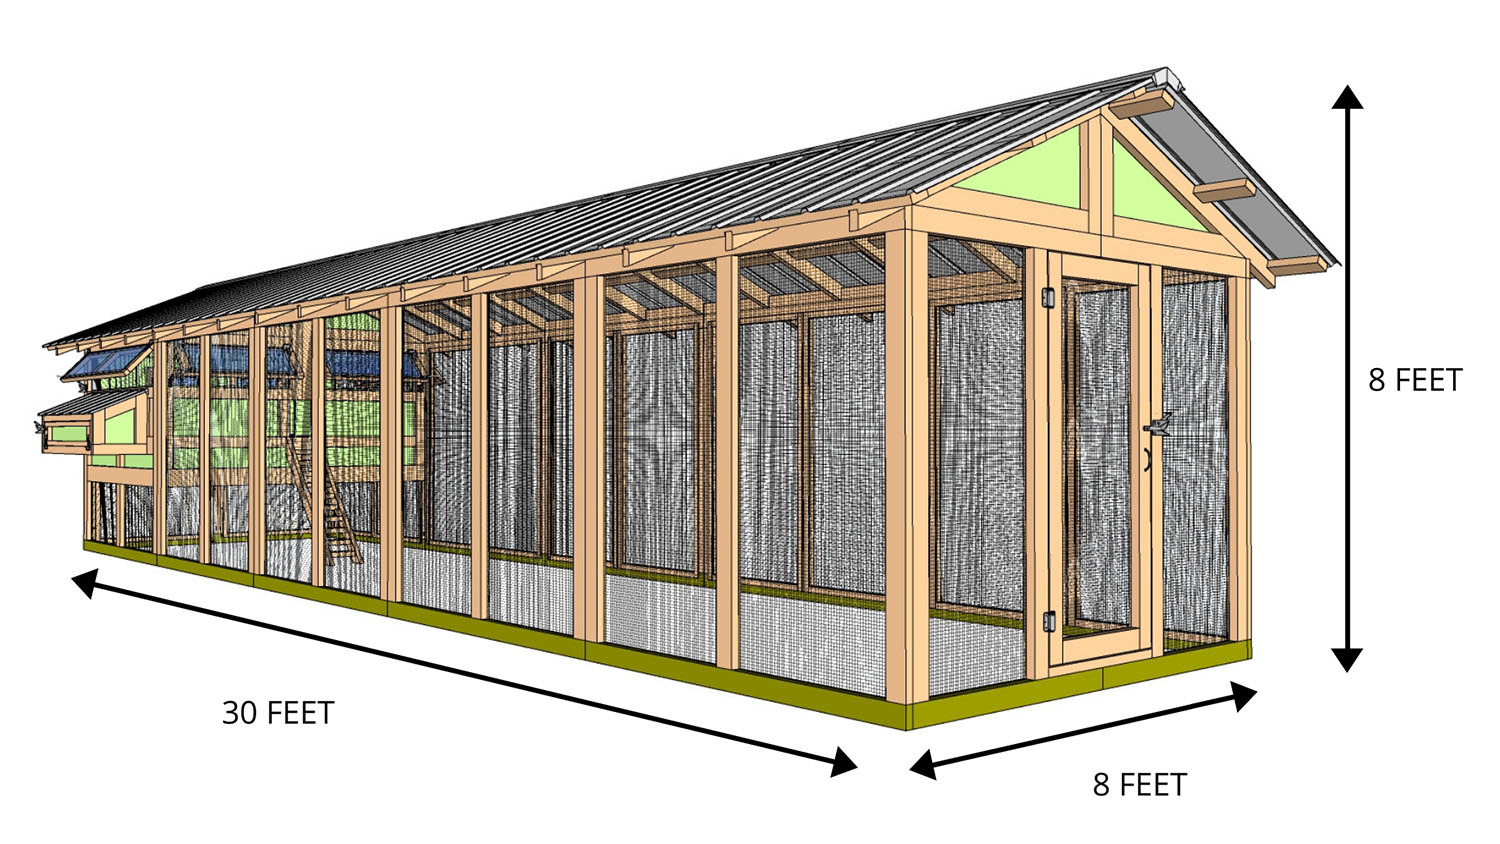 8'x30' American Coop with 6'x8' henhouse - STARTS AT $9,000